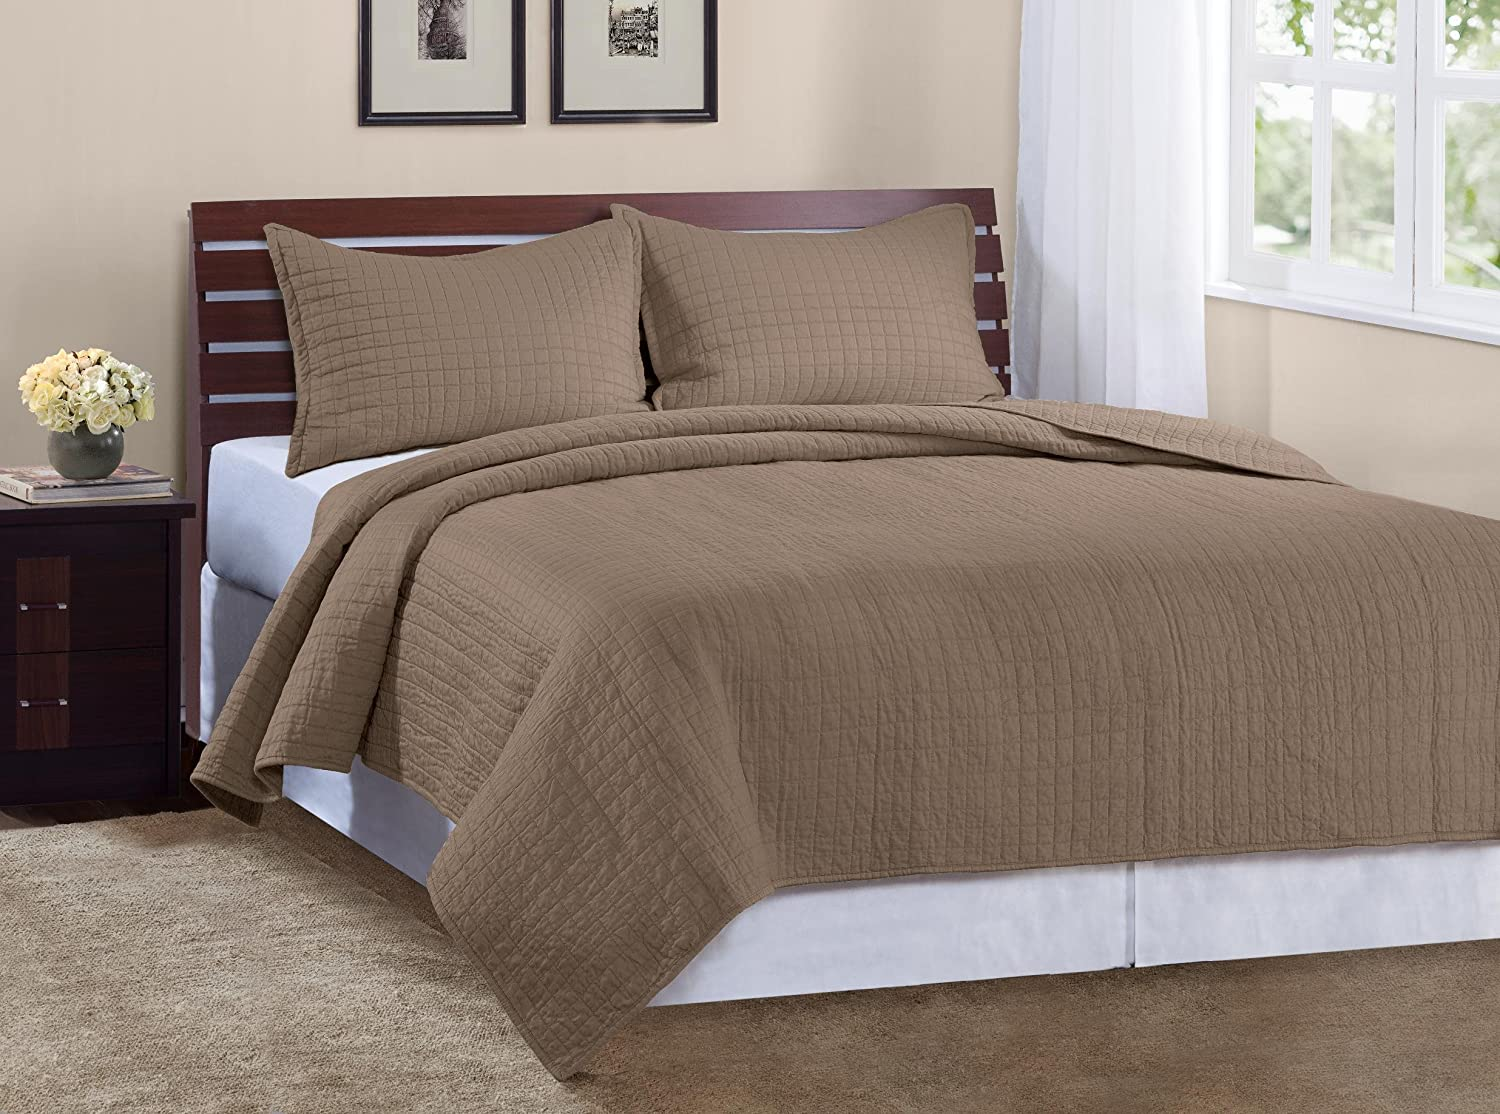 Amazon.com: Marcini Luxury King Size 3-piece Cotton Quilt ... : king size quilted bedspread - Adamdwight.com